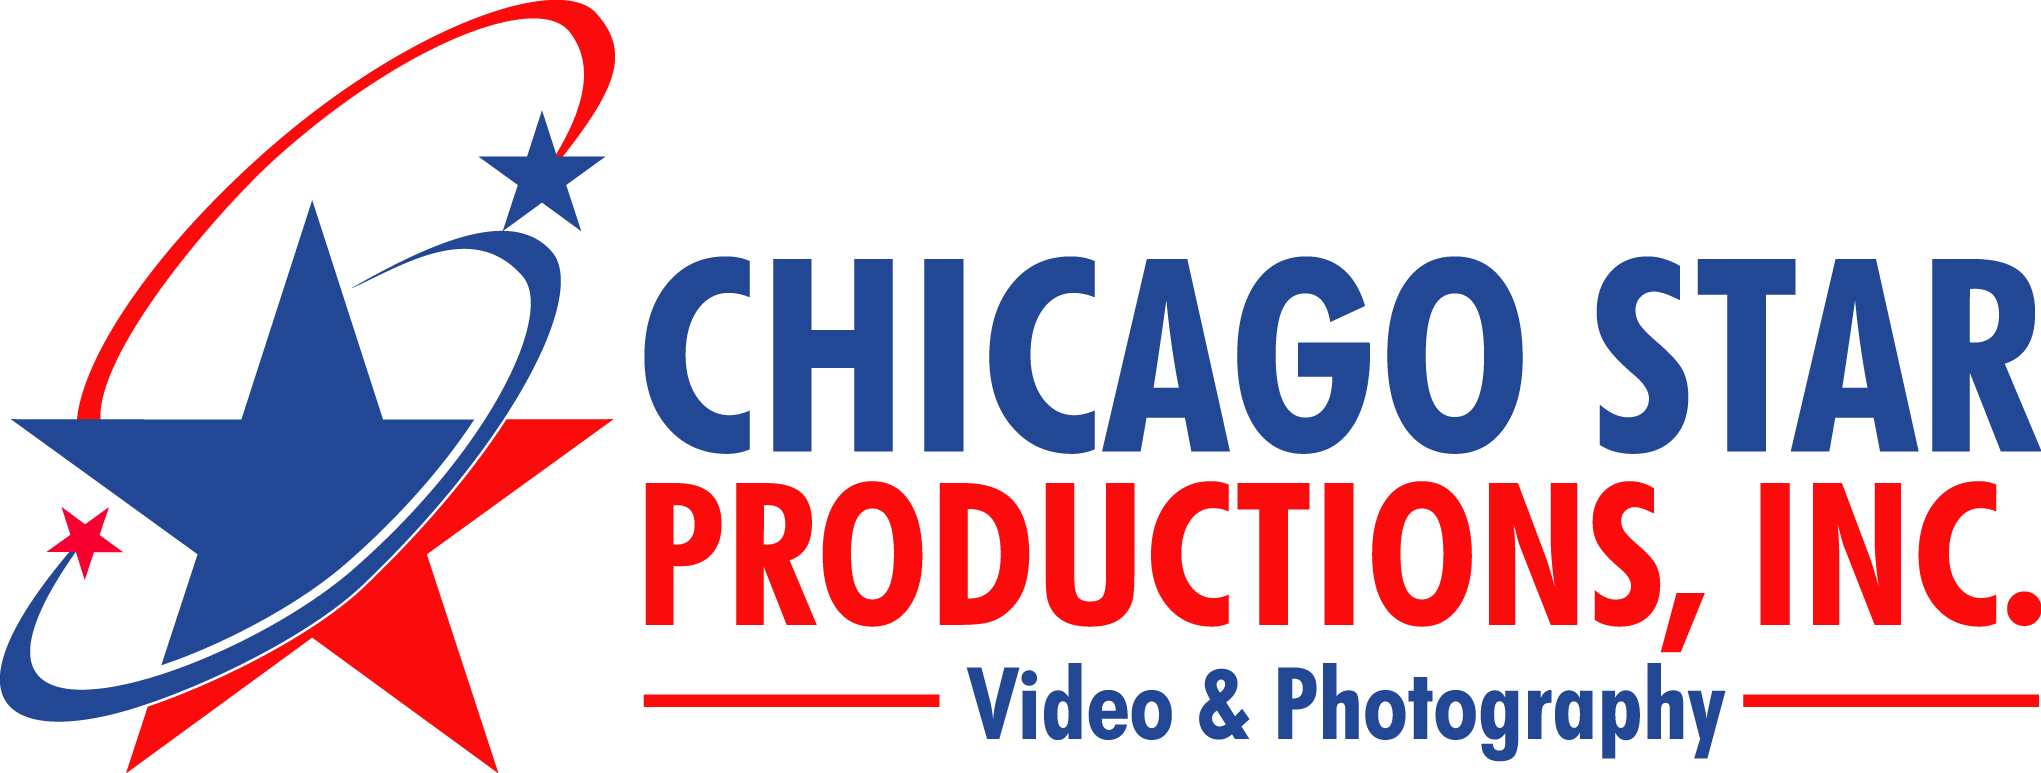 Chicago star png. Productions inc